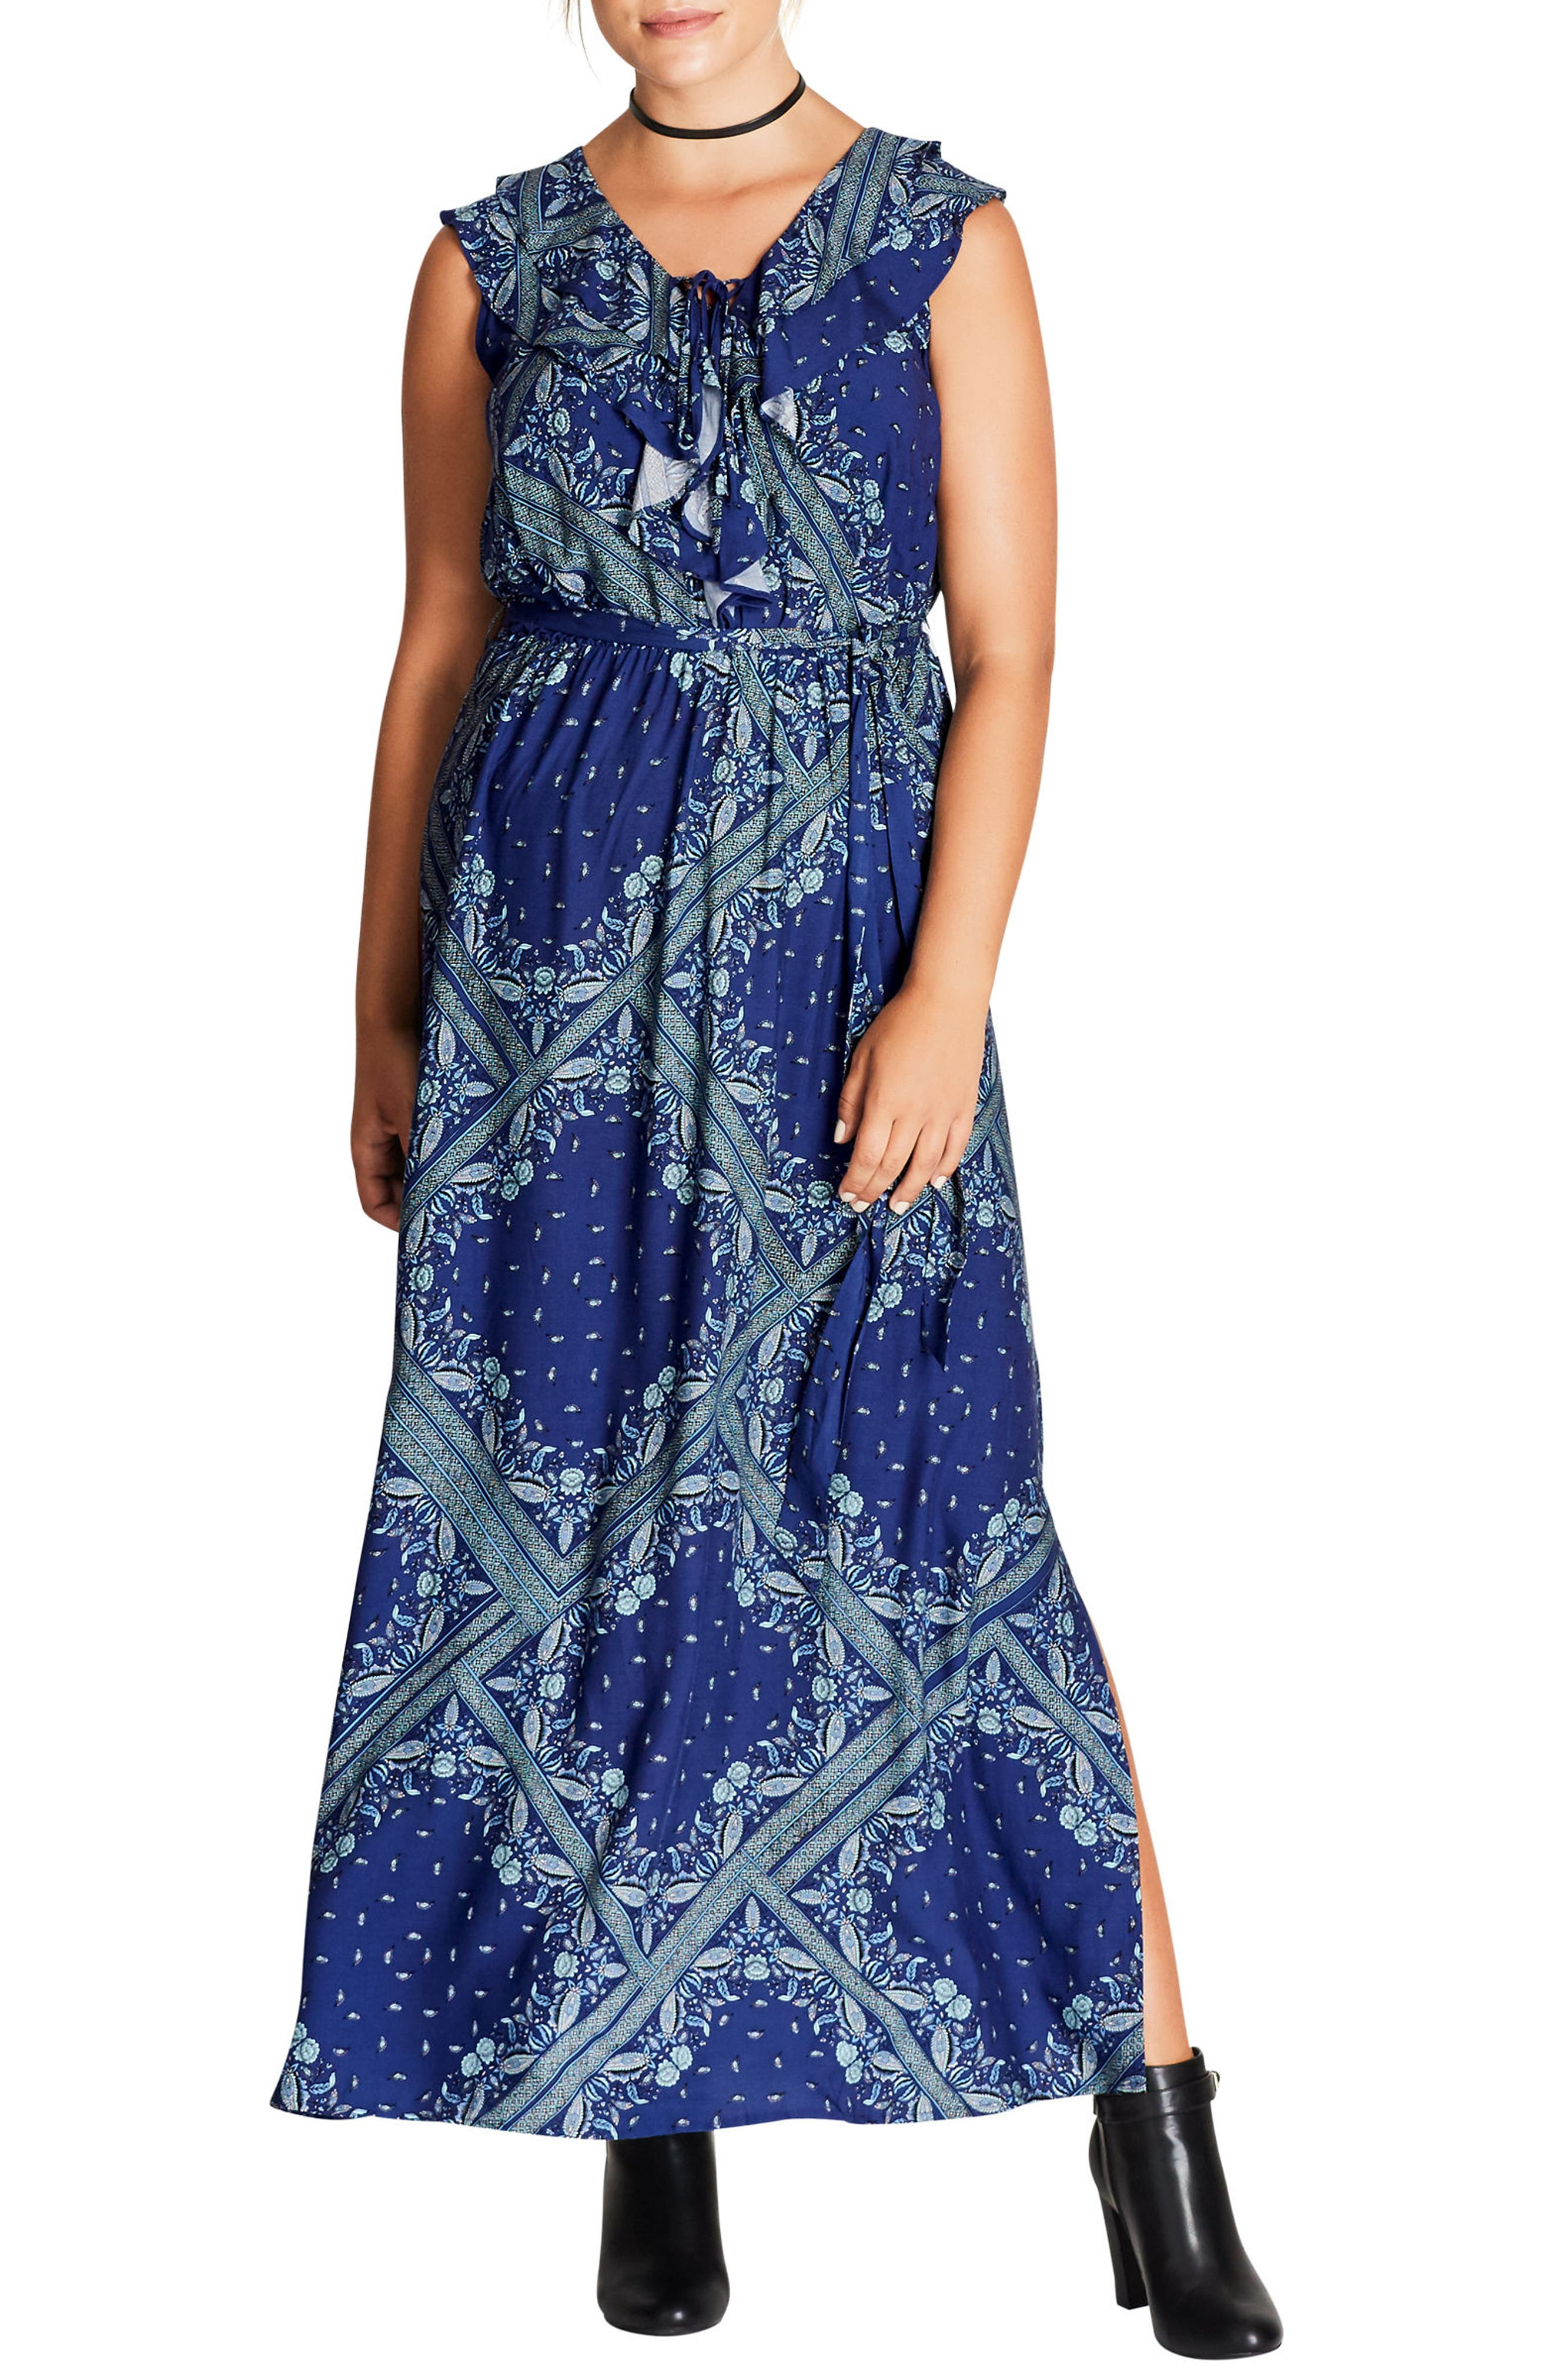 Alternate Image 1 Selected - City Chic Patchwork Print Maxi Dress (Plus Size)